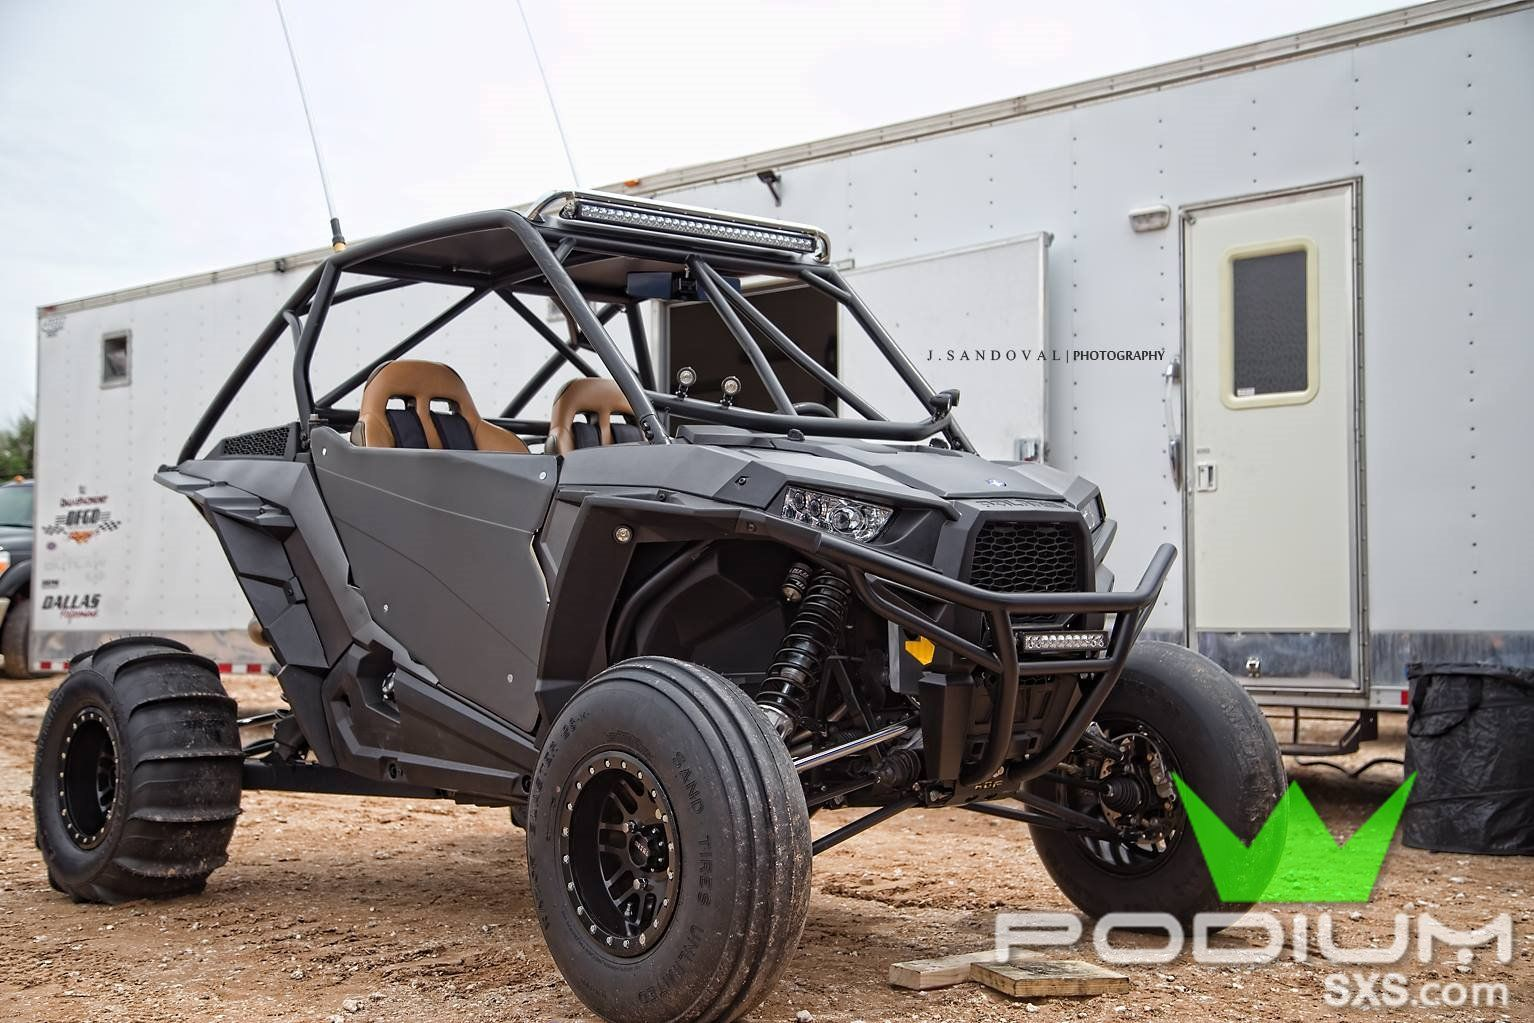 Polaris Rzr Xp 1000 Roll Cage F 18b 4 Lower Than Stock Race Inspired Light Weight And Indestructible Design Polaris Rzr Polaris Rzr Xp 1000 Polaris Rzr Xp